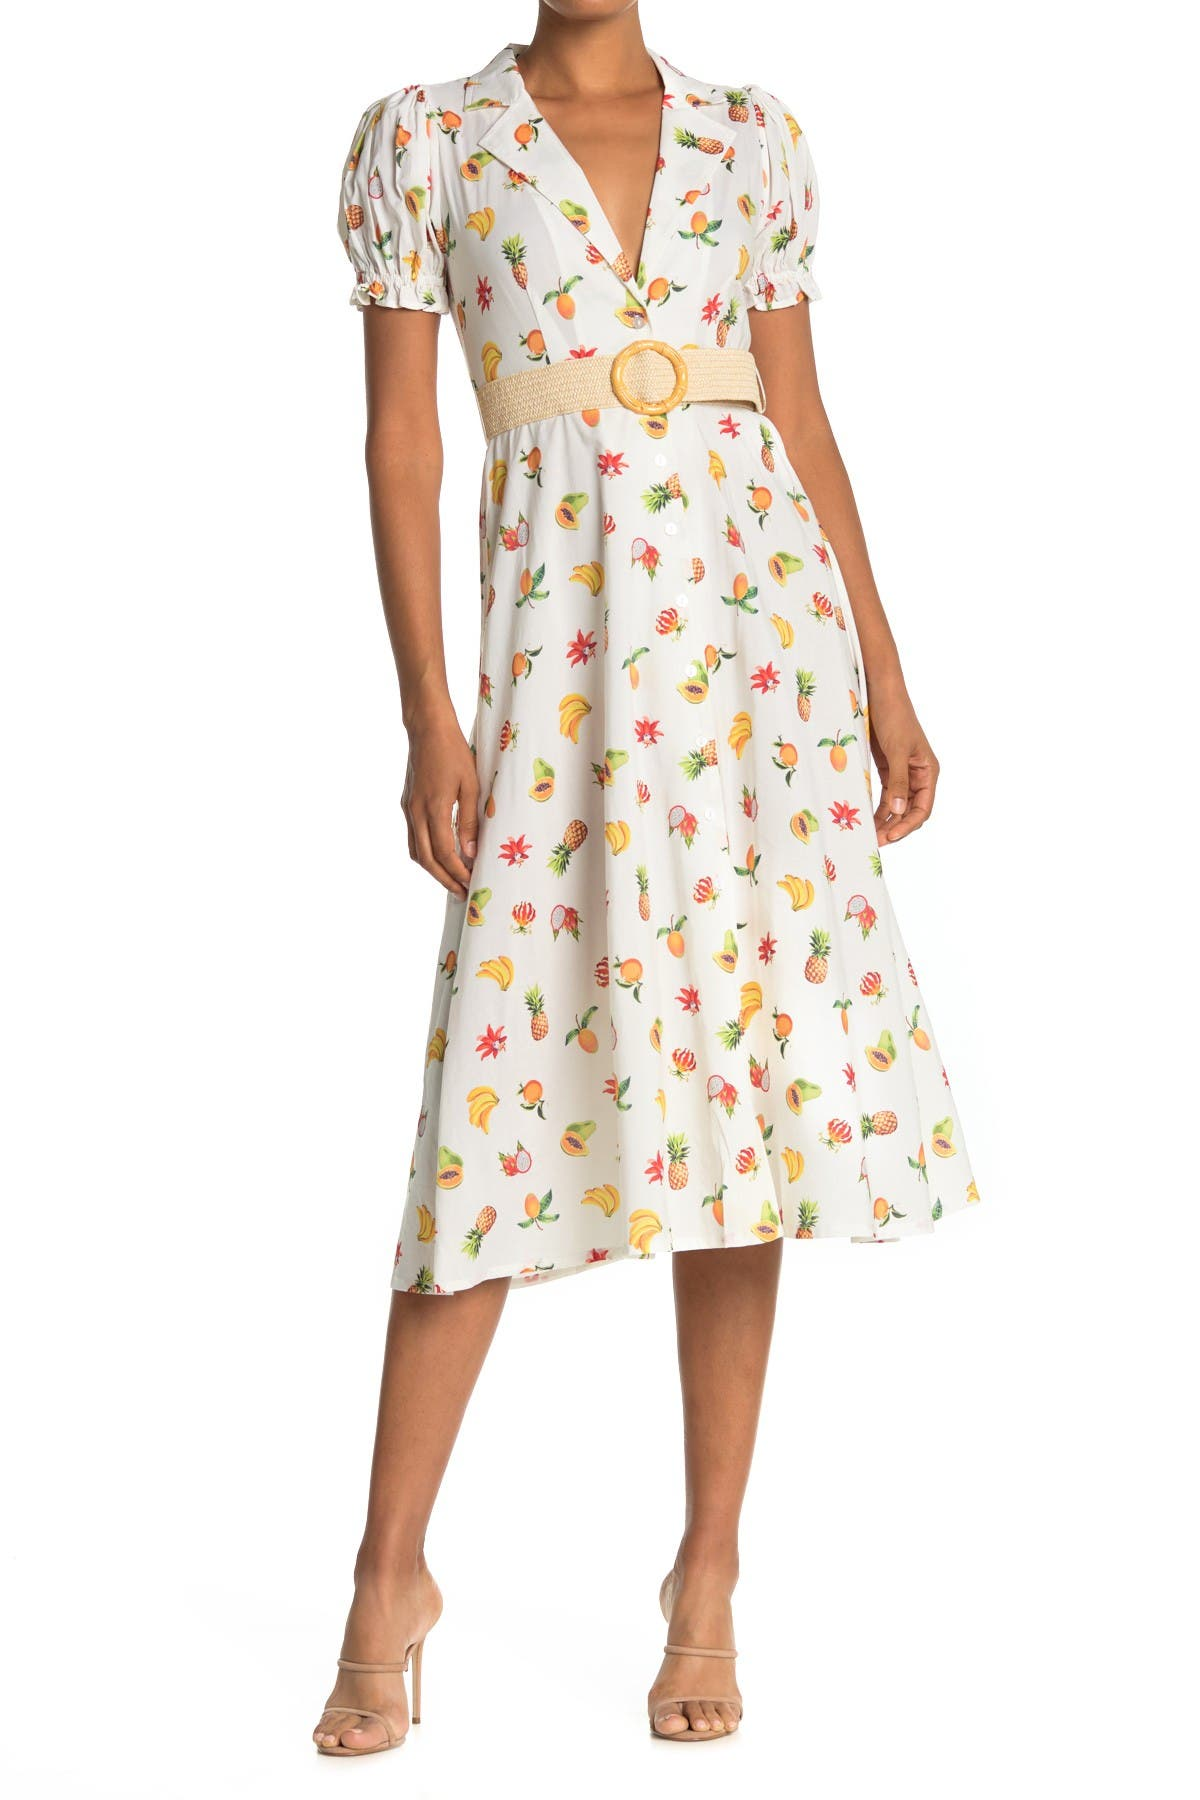 Image of WeWoreWhat Ellie Day Dress